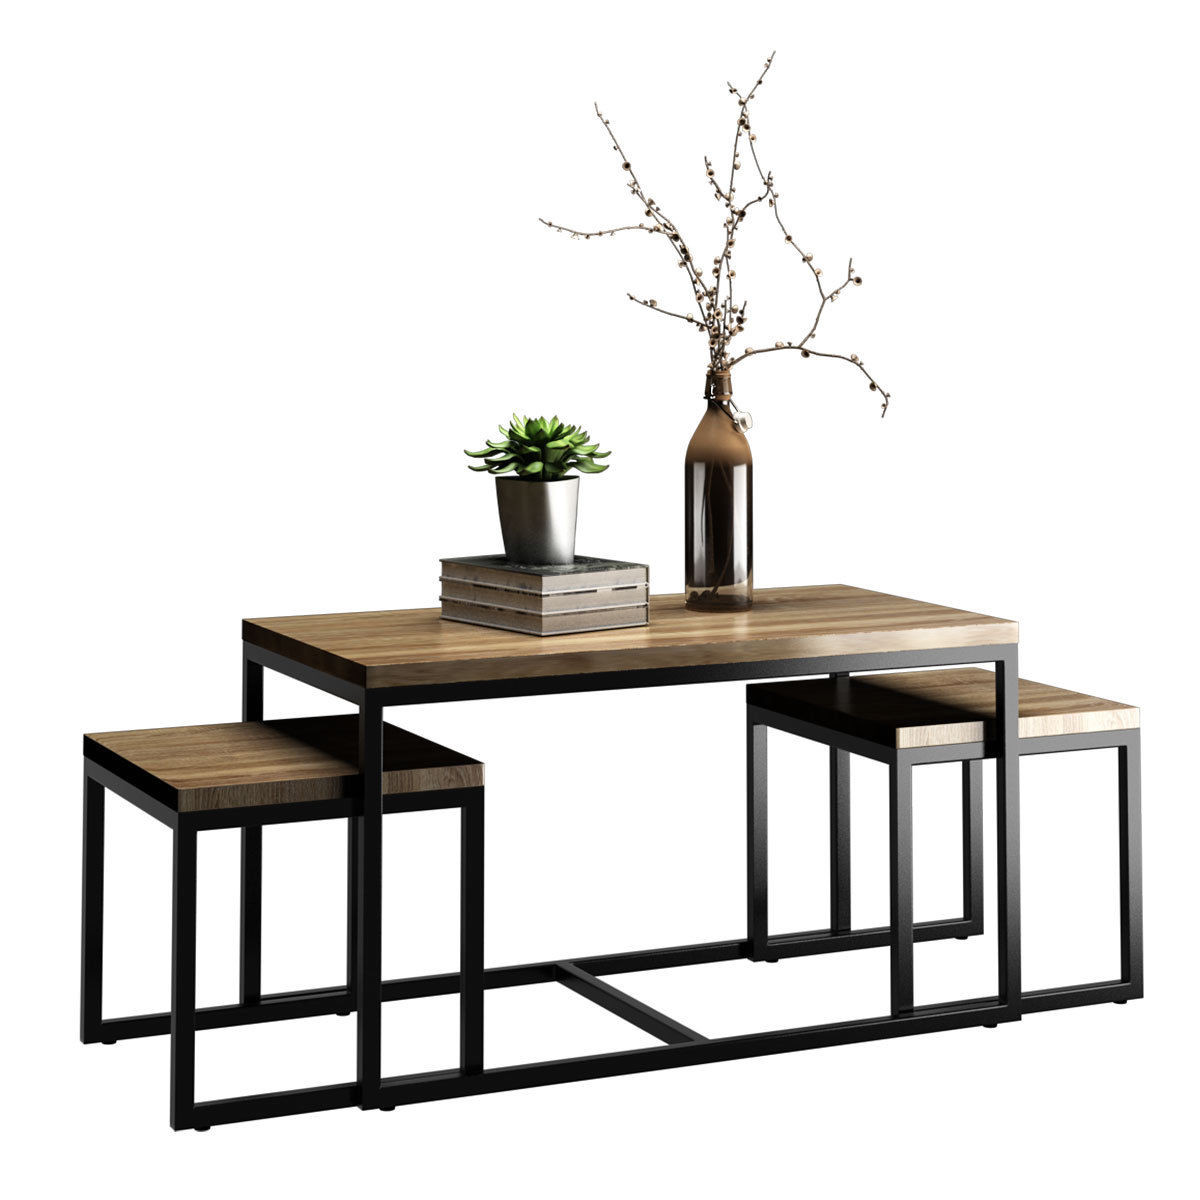 Walmart Living Room Table Sets  Costway 3 Piece Nesting Coffee & End Table Set Wood Modern